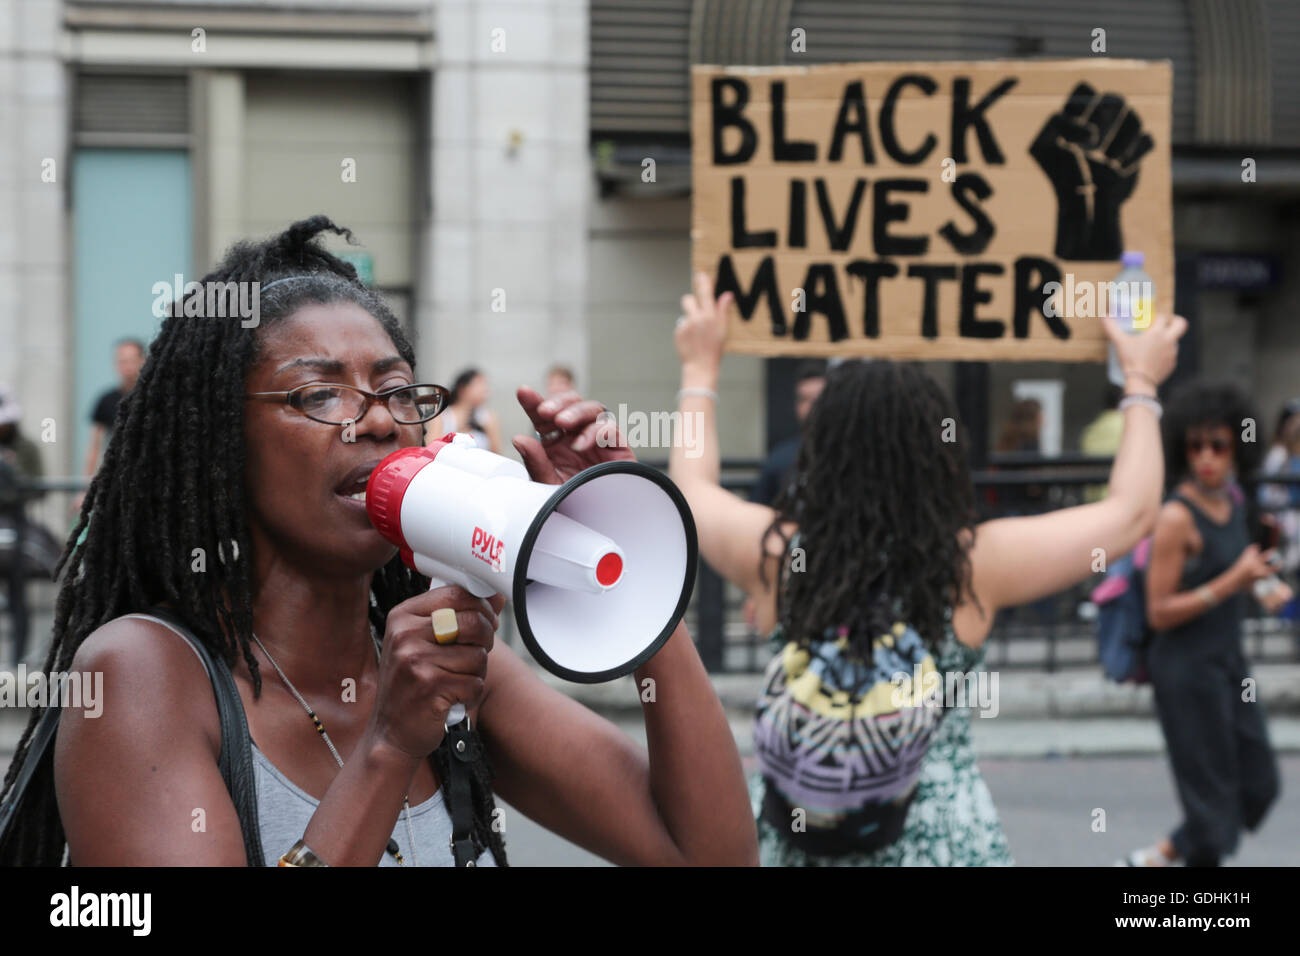 London, UK. 17th July, 2016. Marcia Riggs who, s brother Sean Riggs died in police custody and supporters with banners - Stock Image